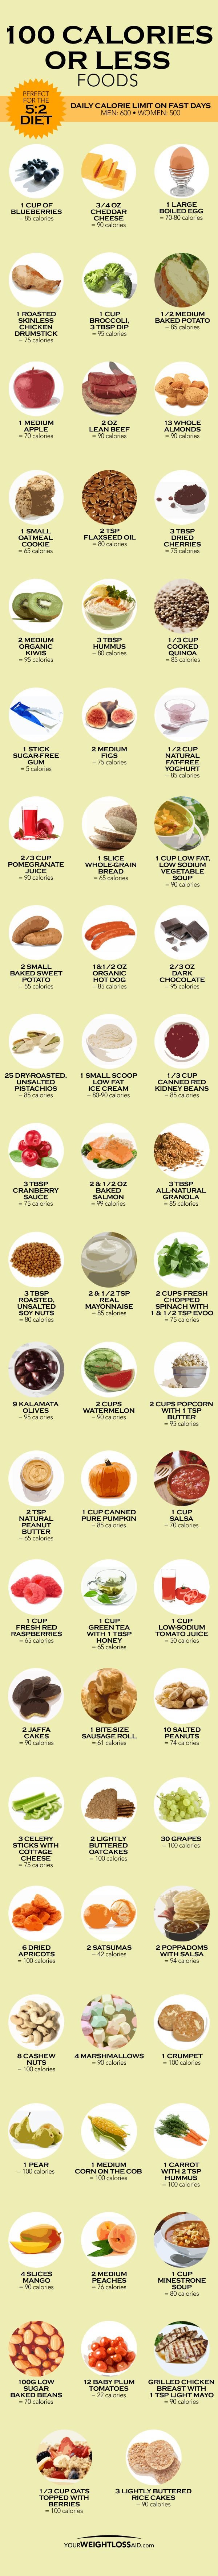 "HEALTHY FOOD - ""An infographic showing a list of foods all under 100 calories. Perfect for the #fasting or 5:2 Diet. #weightloss #dieting""."